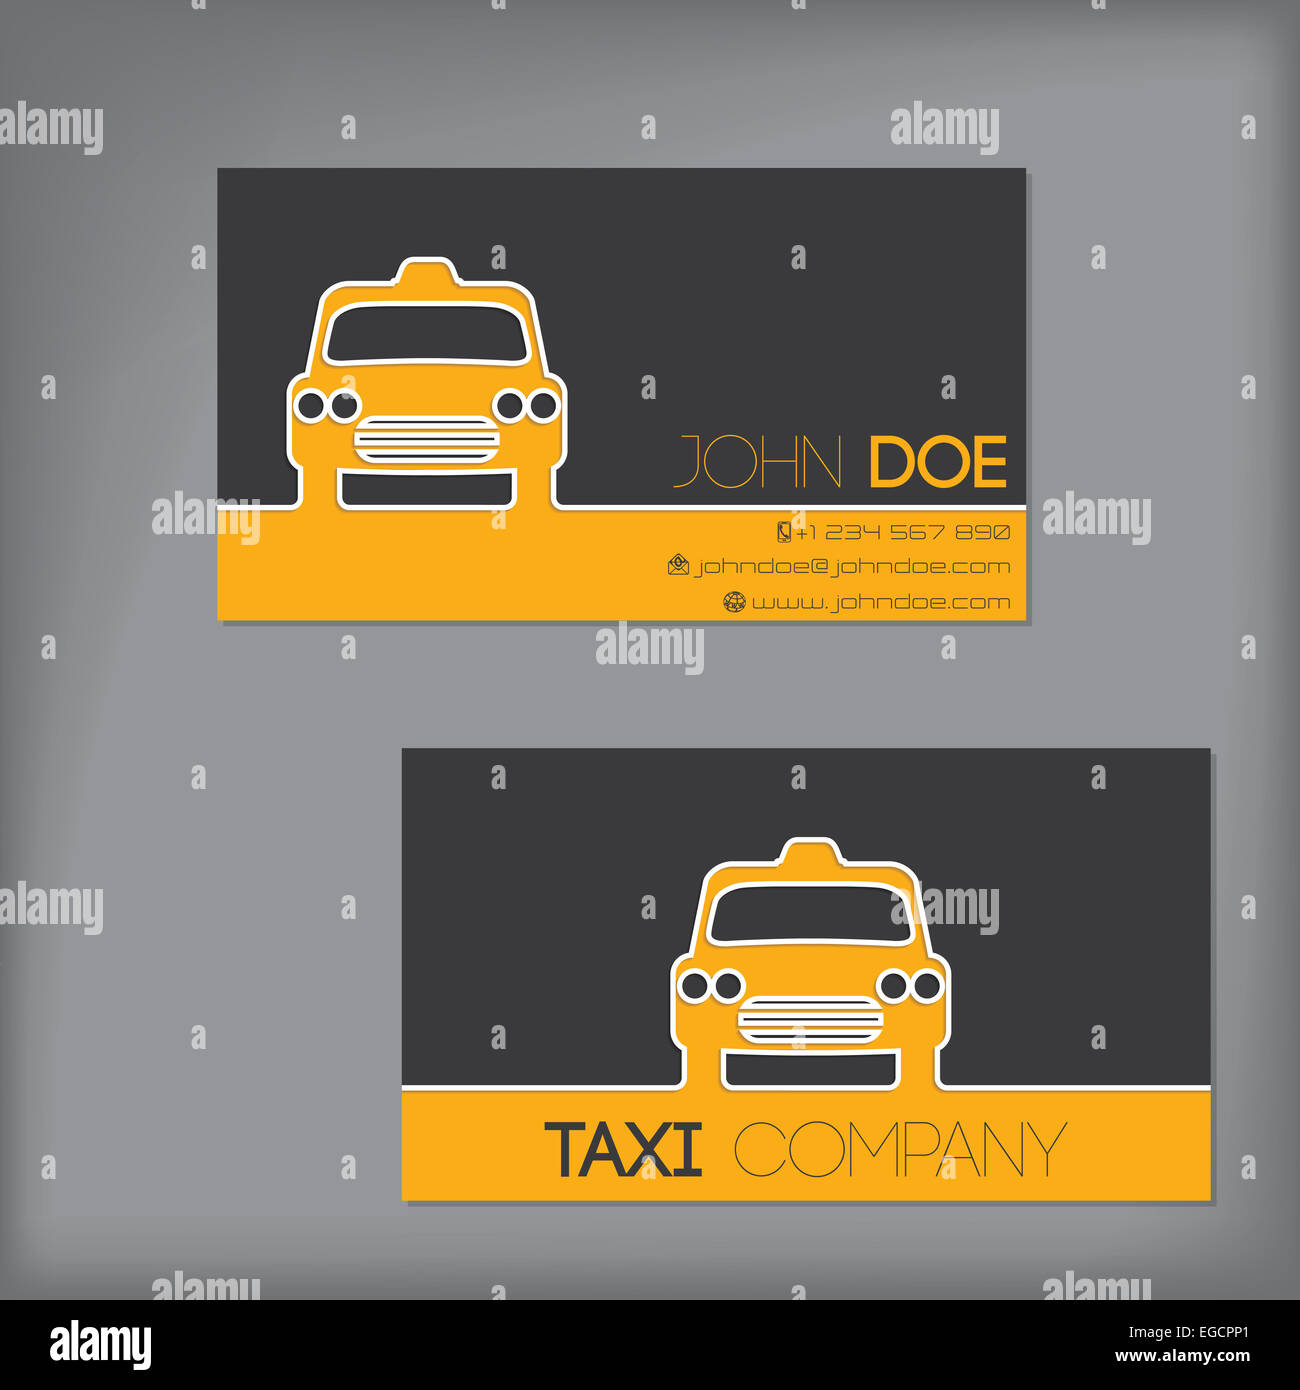 Taxi business card design with cab silhouette Stock Photo ...